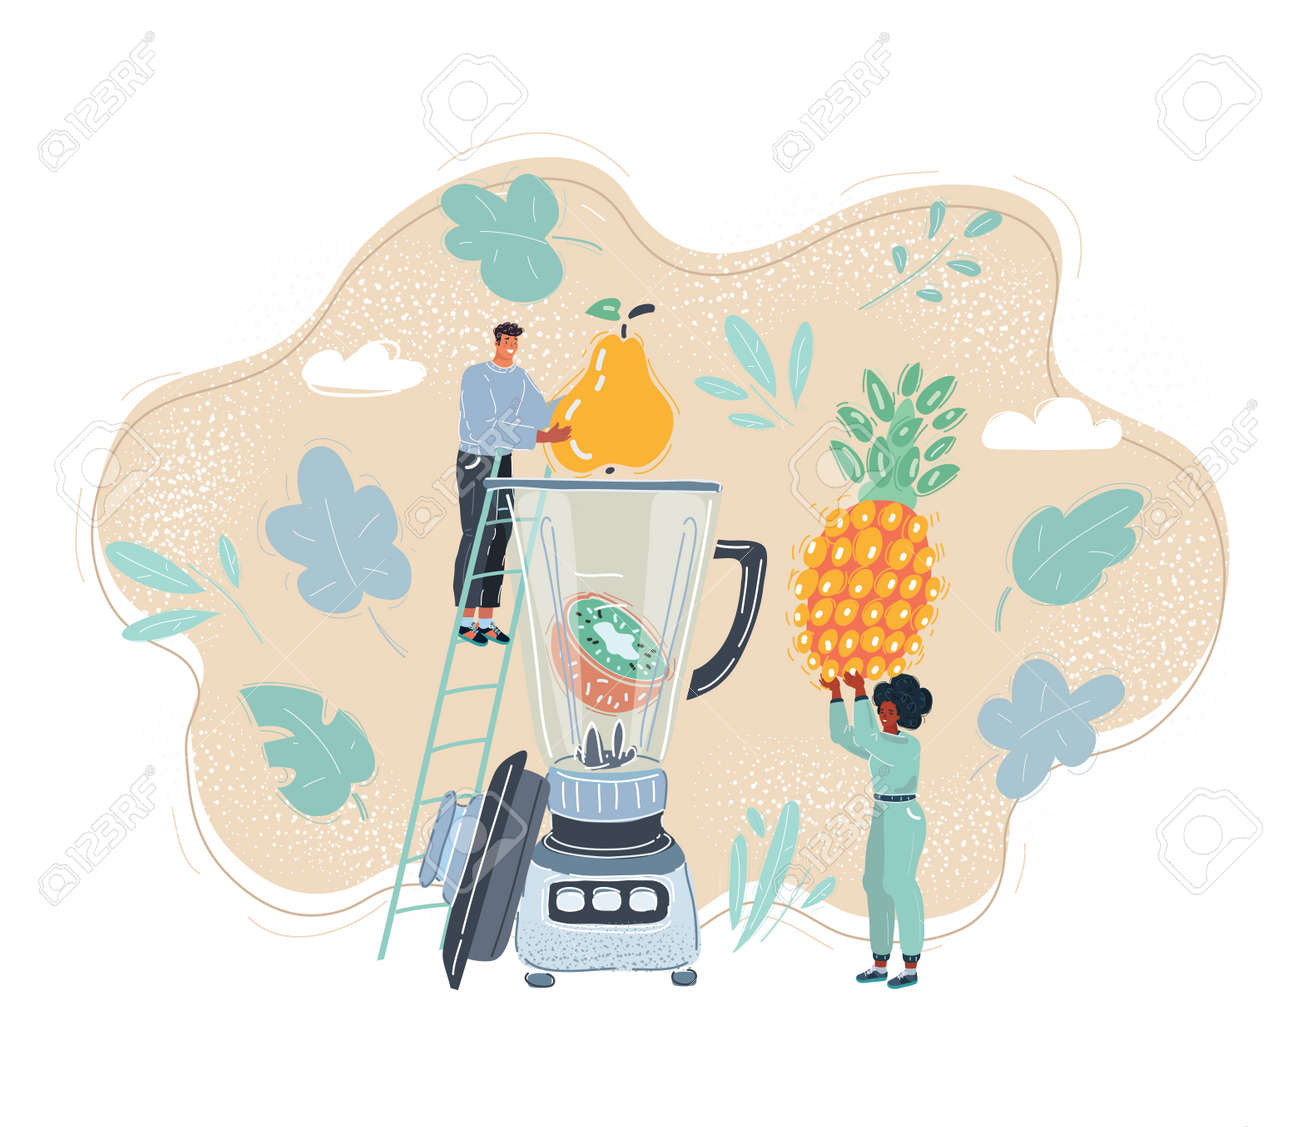 Cartoon illustration of Smiling cute man and woman posing with a blender - 155301434